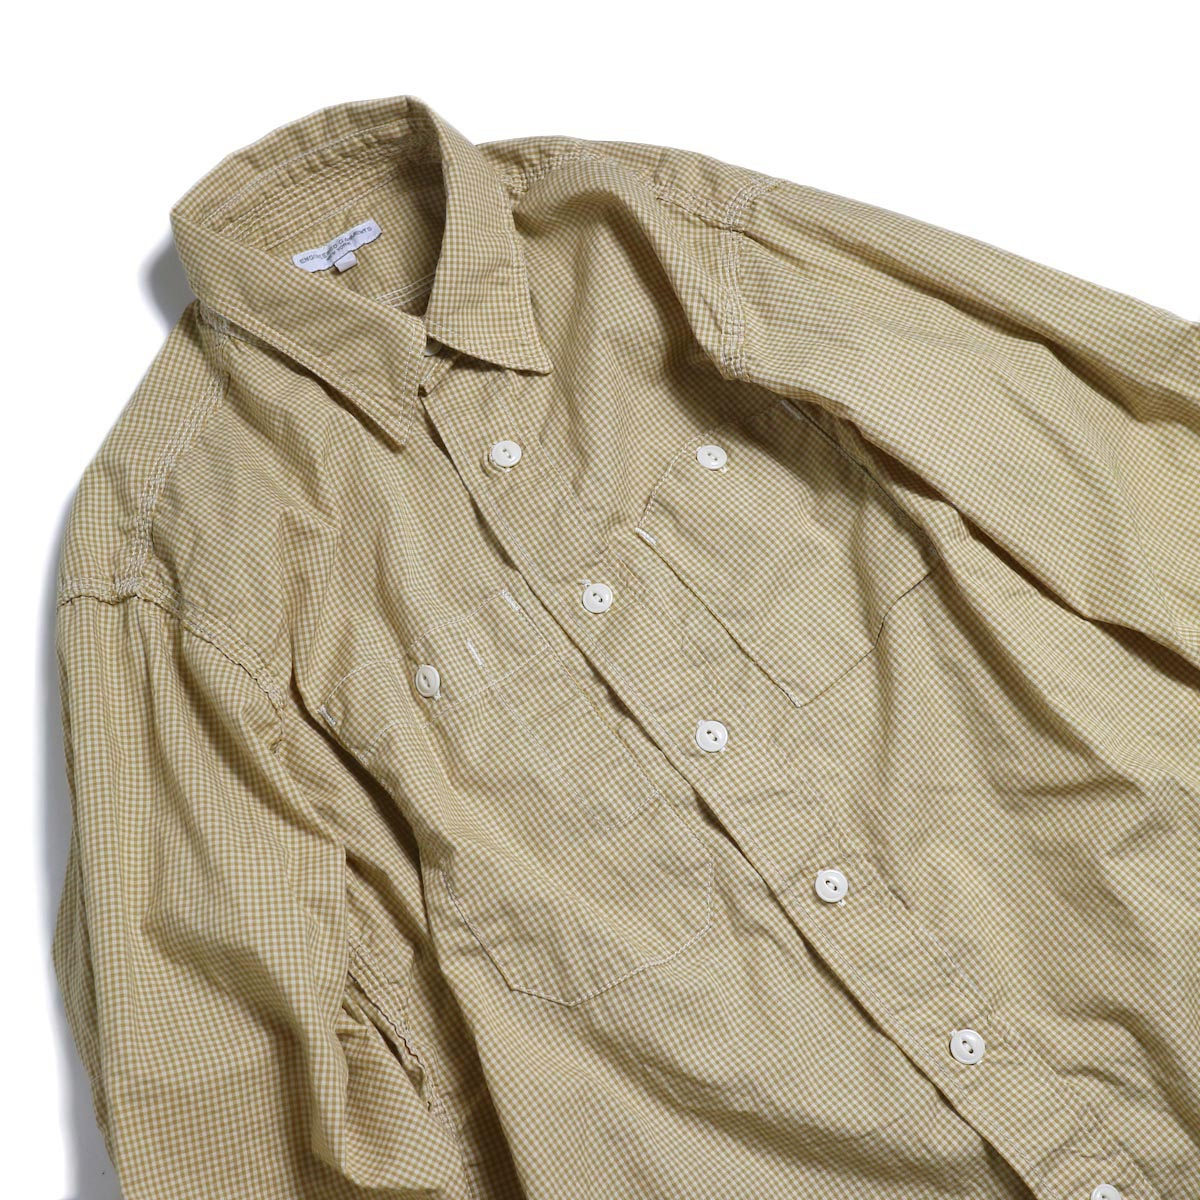 ENGINEERED GARMENTS / Work Shirt -Small Gingham Broadcloth (Gold) 襟元